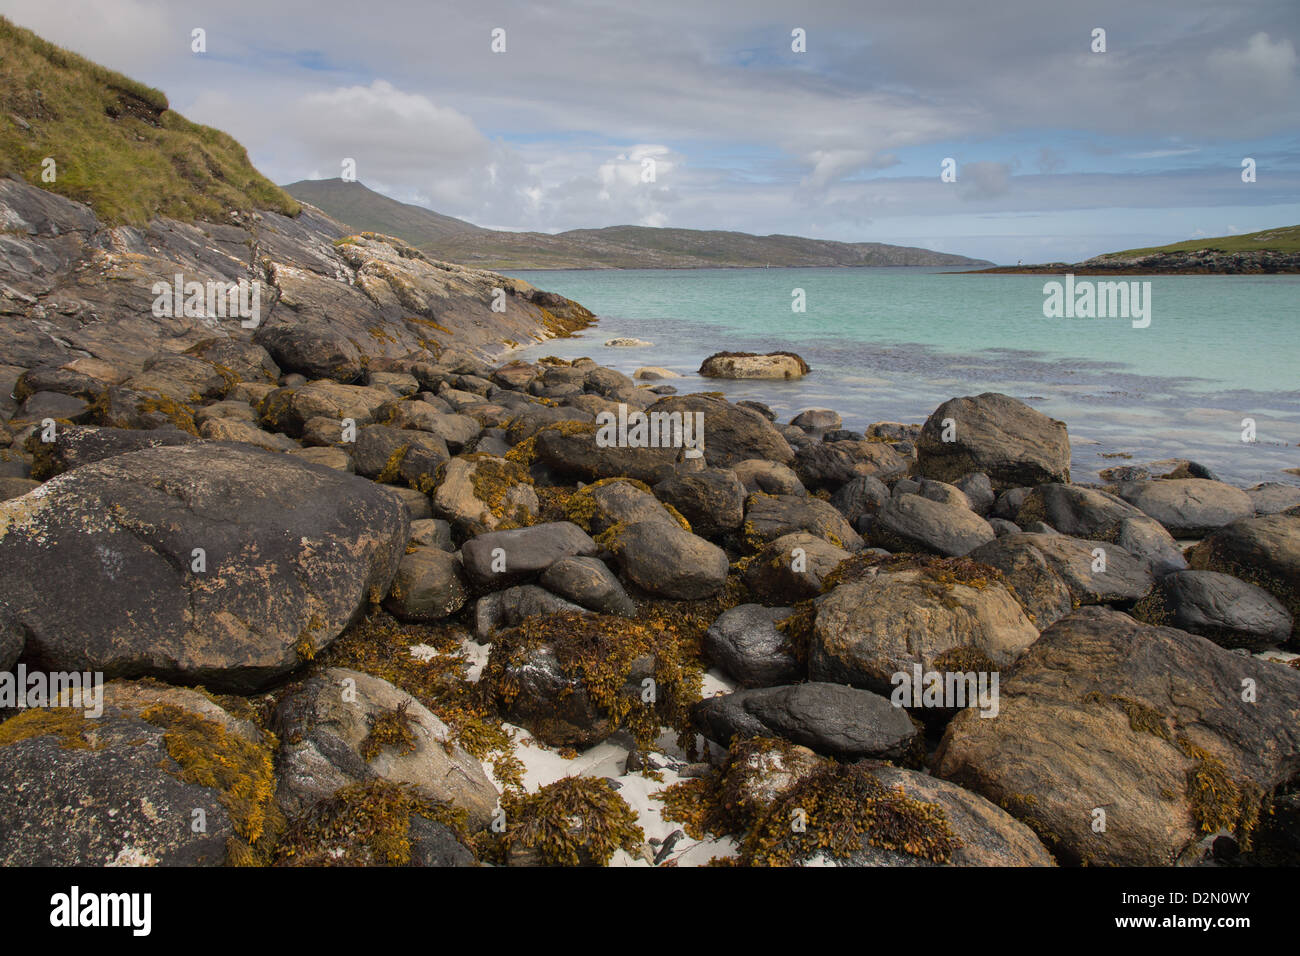 A beautiful sandy and rocky beach on the Isle of Barra in The Outer Hebrides - Stock Image